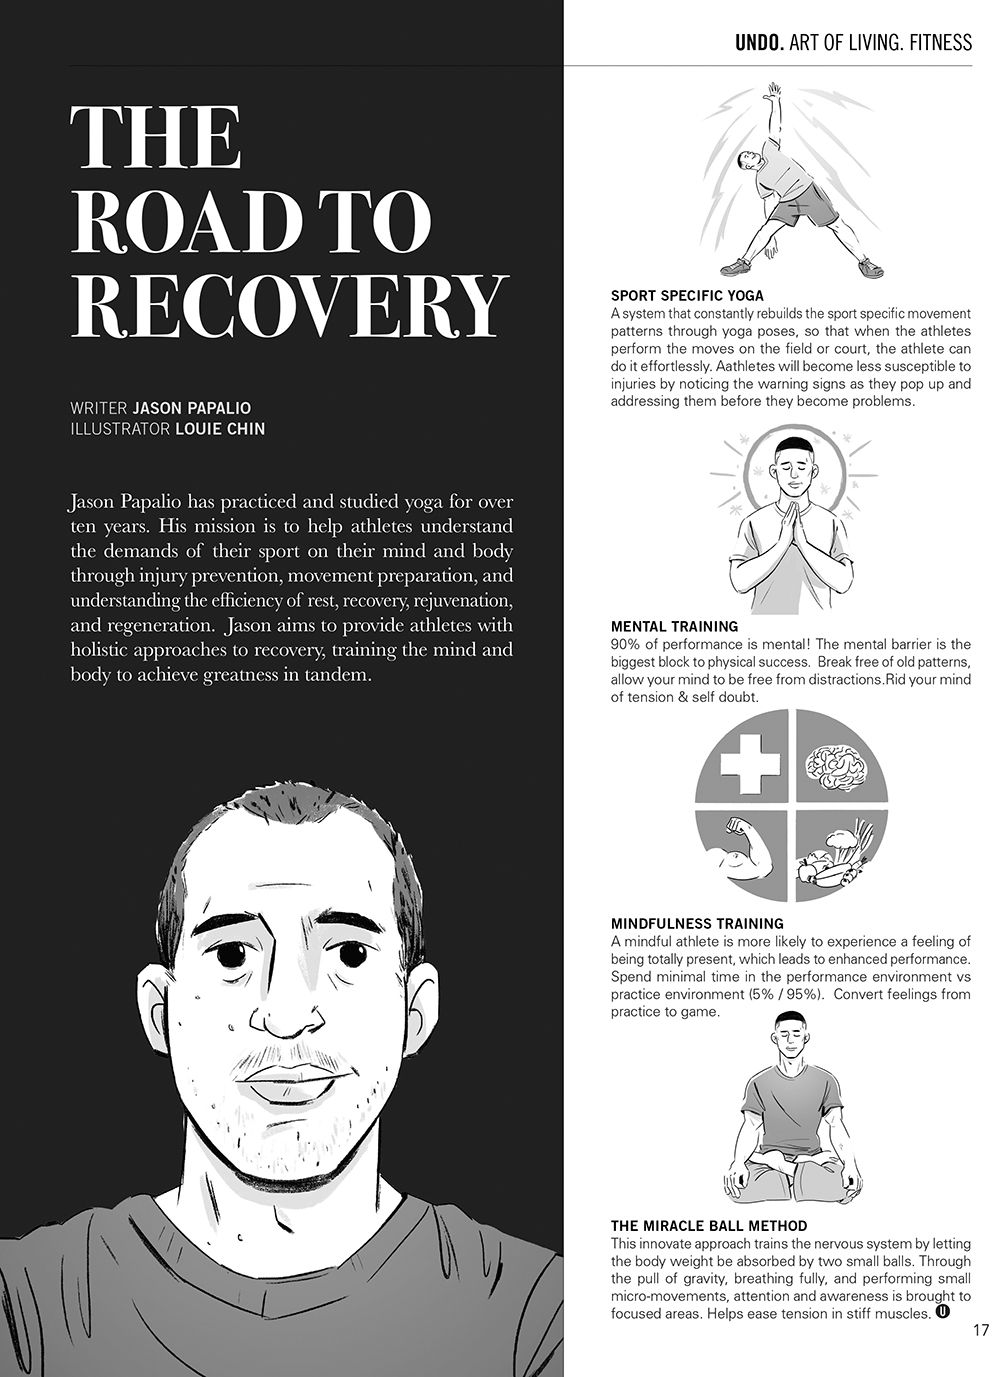 The Road to Recovery  by: Jason Papalio AD:  Sophia Chang